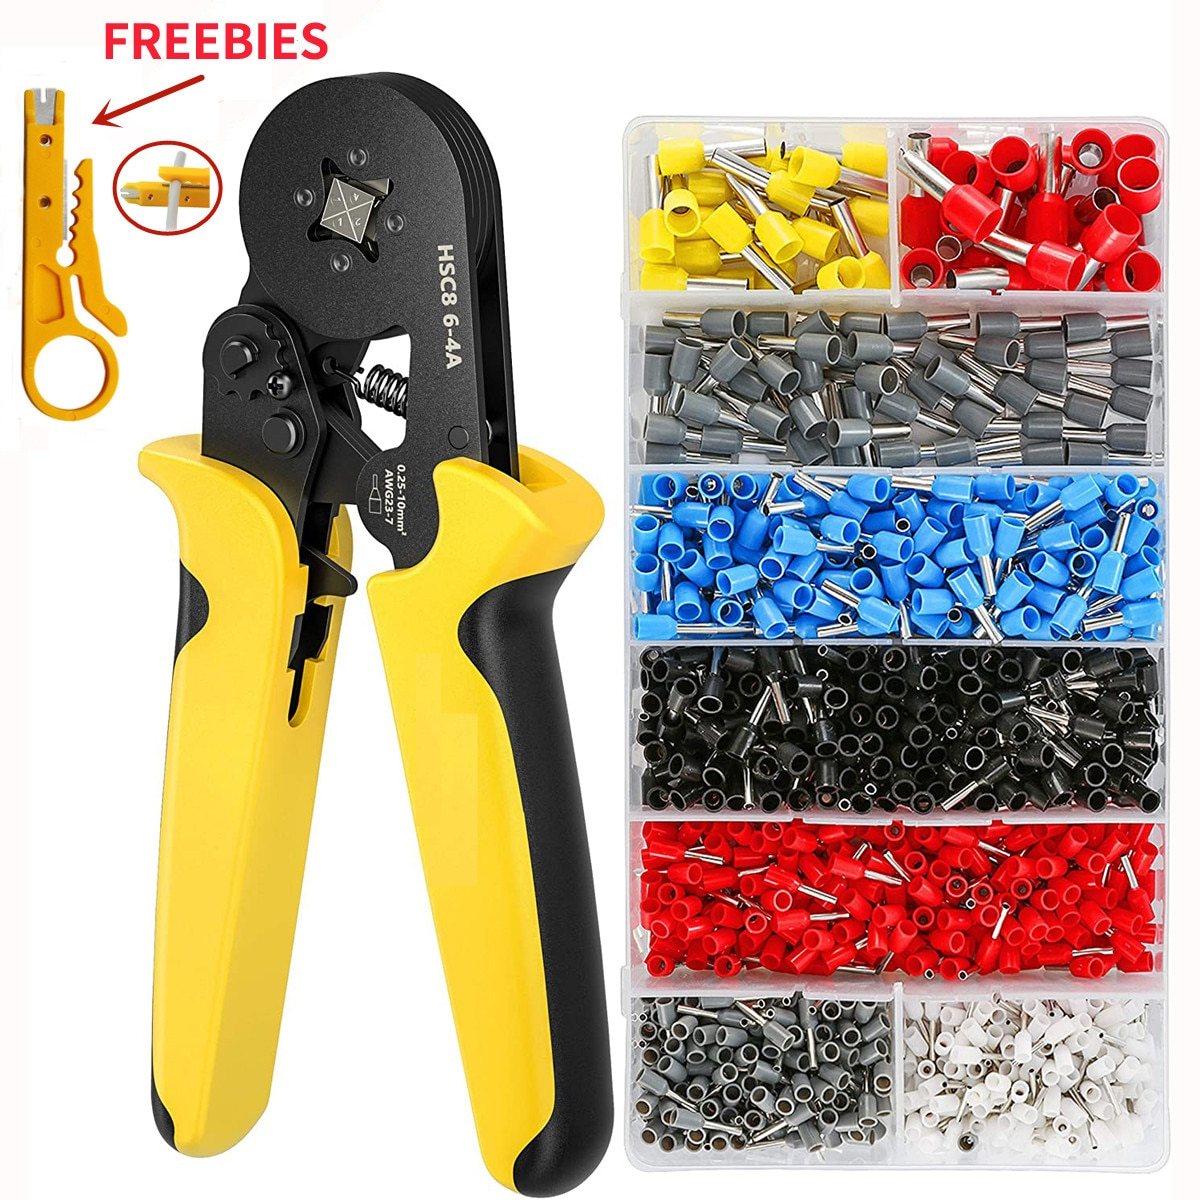 crimping tool set crimp tools wire crimping tool kit ferrule crimping plier tools 1200pcs wire ferrule terminals kit 0 25 10mm² Ferrule Crimping Tool Kit - Sopoby Ferrule Crimper Plier AWG 28-7 (0.08-10mm²) w/ 1200pcs Wire Ferrules Crimp Wire Ends Terminal